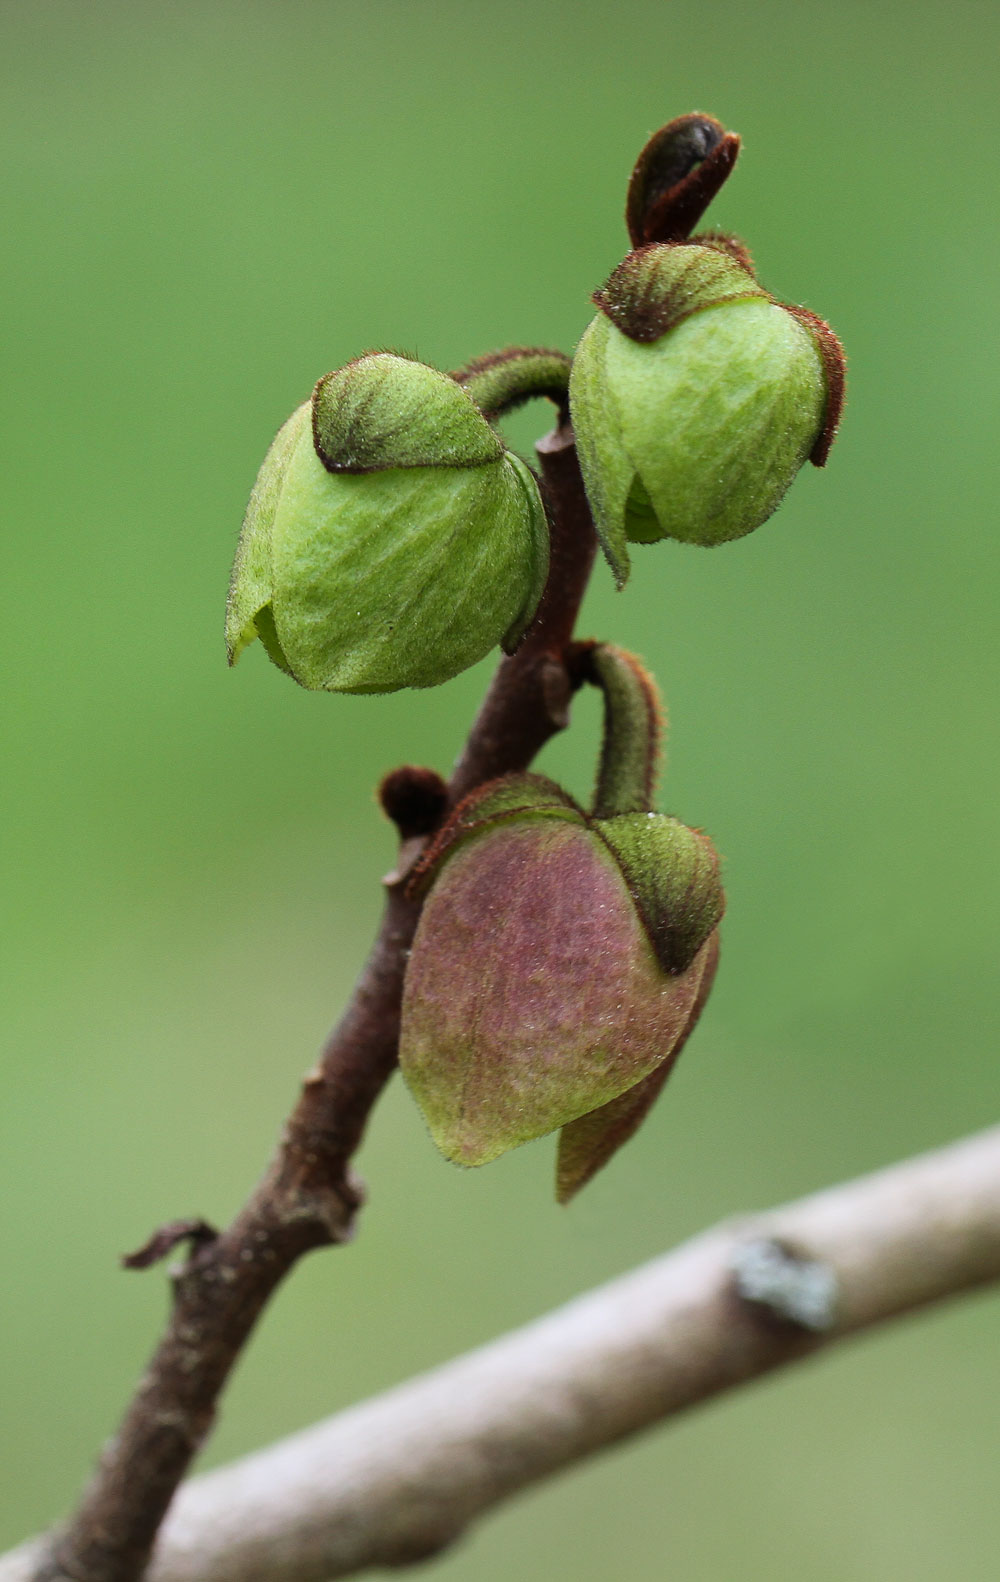 Paw paw blooms not fully open. Photo by Debbie Roos.